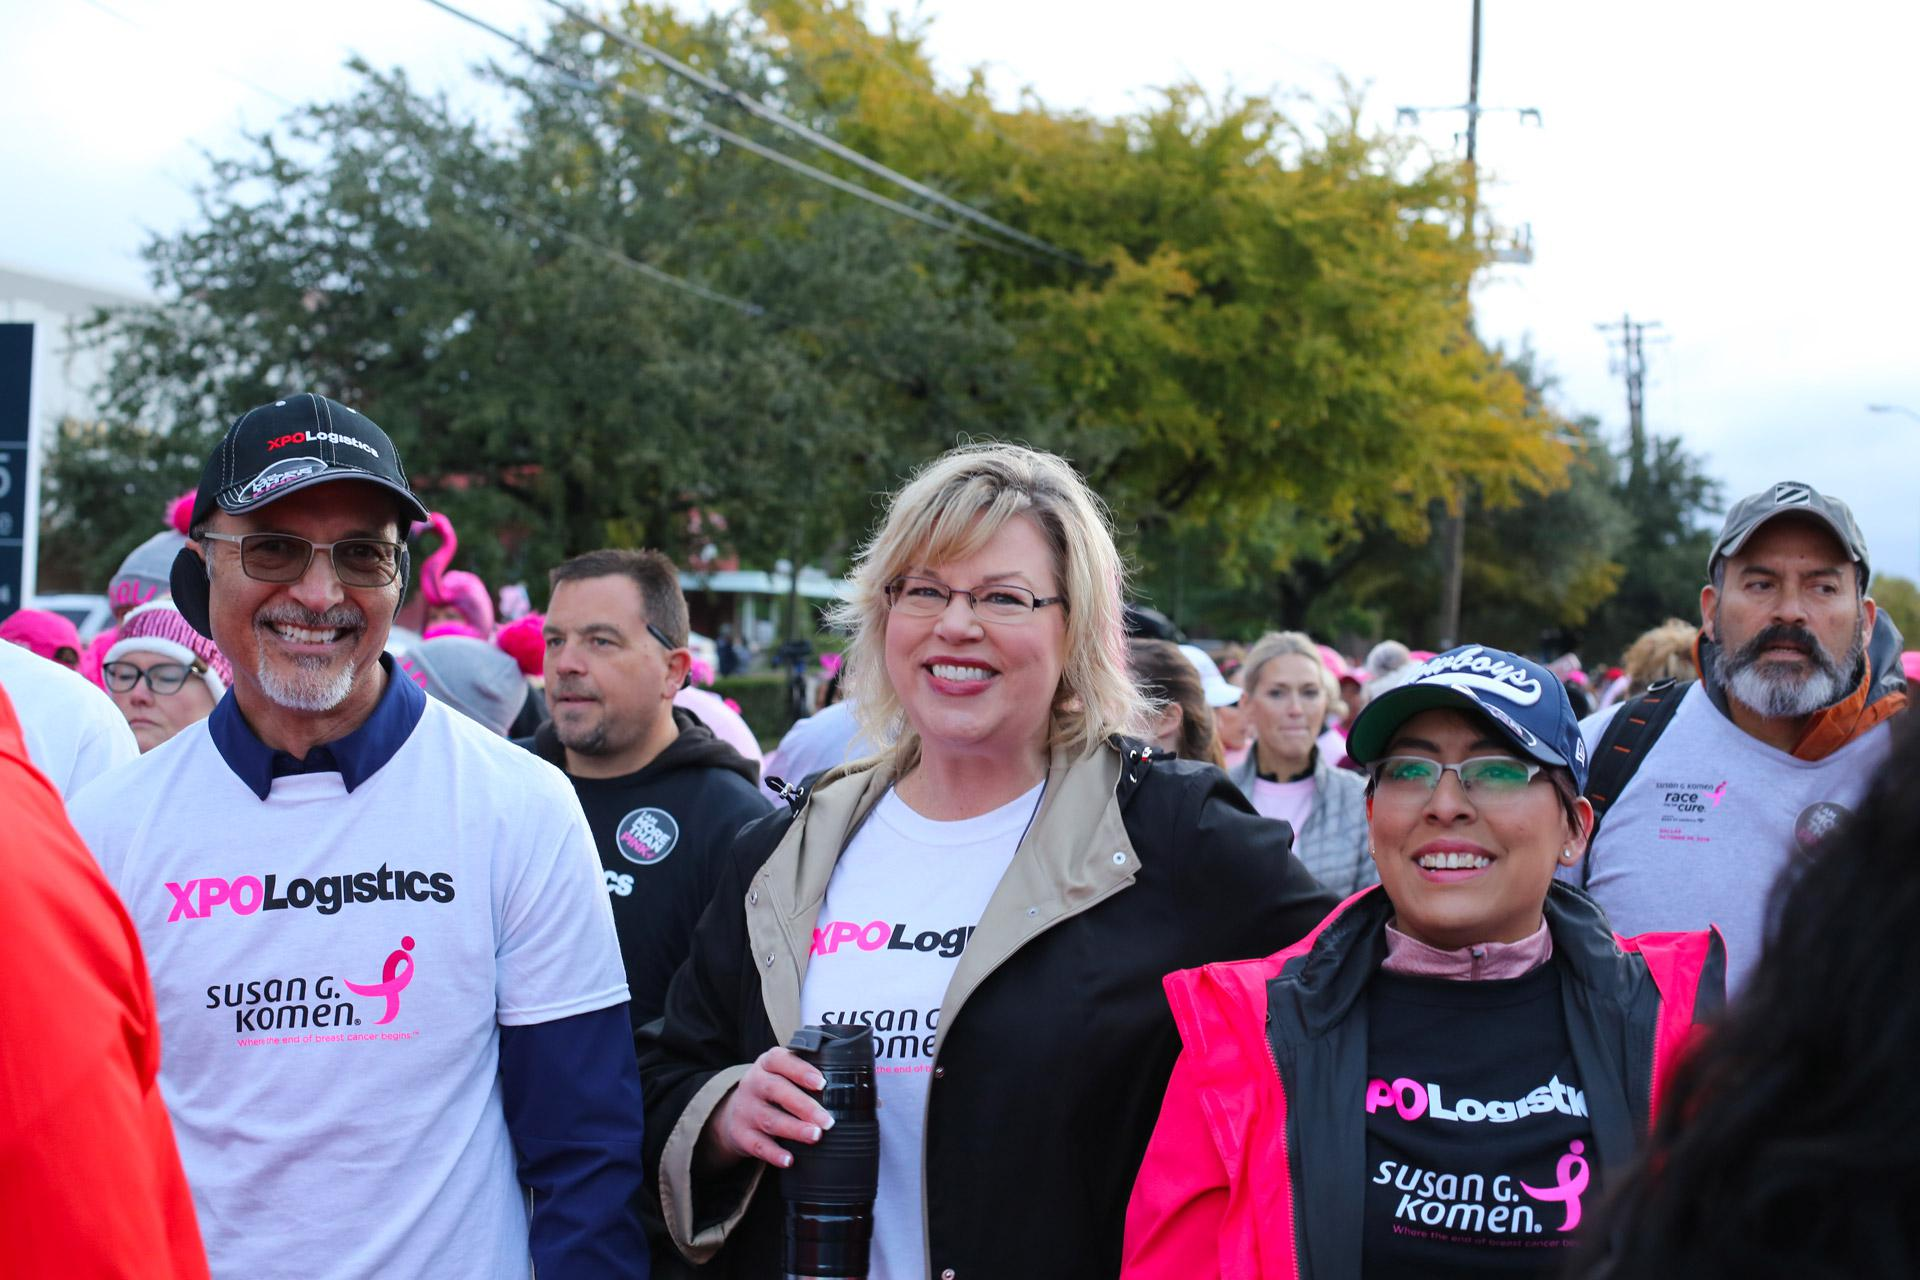 XPO employees participate in a Susan G. Komen Race for the Cure.